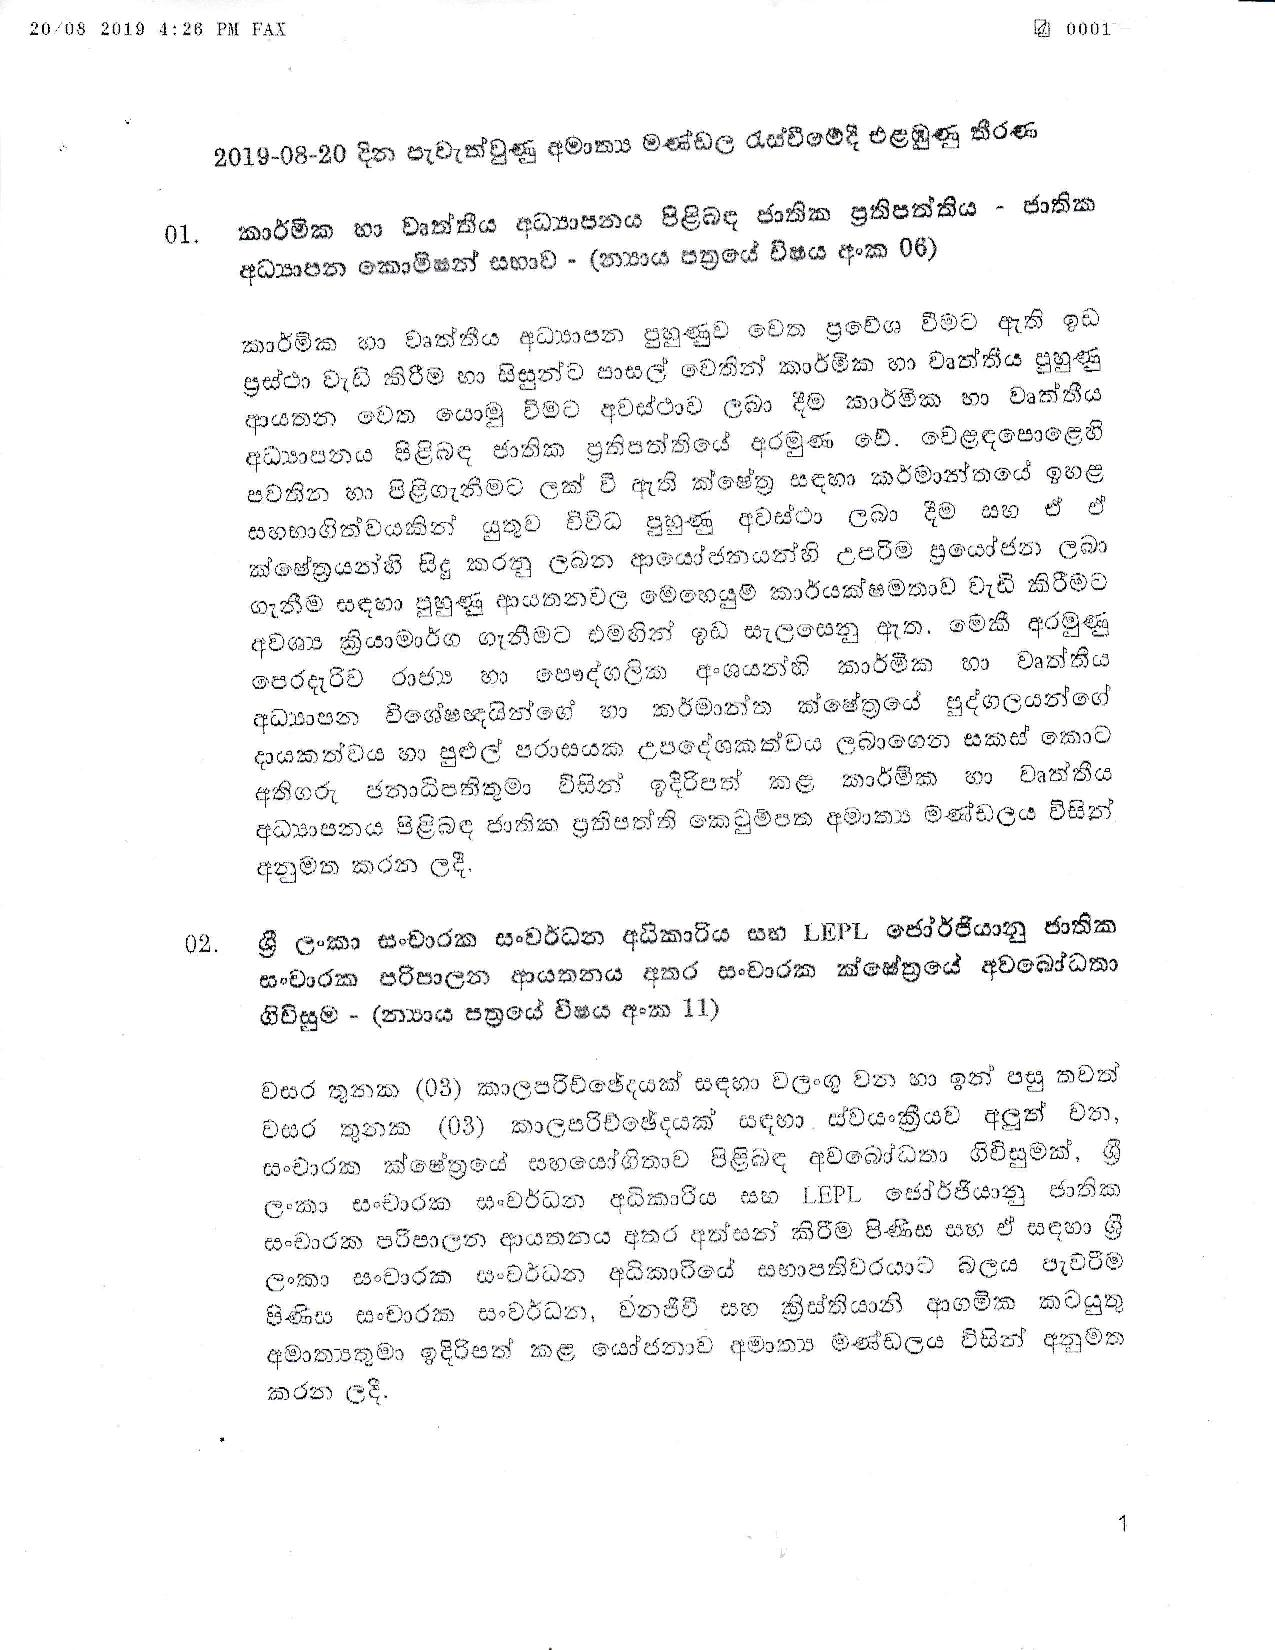 Cabinet Decision on 20.08.2019 1 page 001